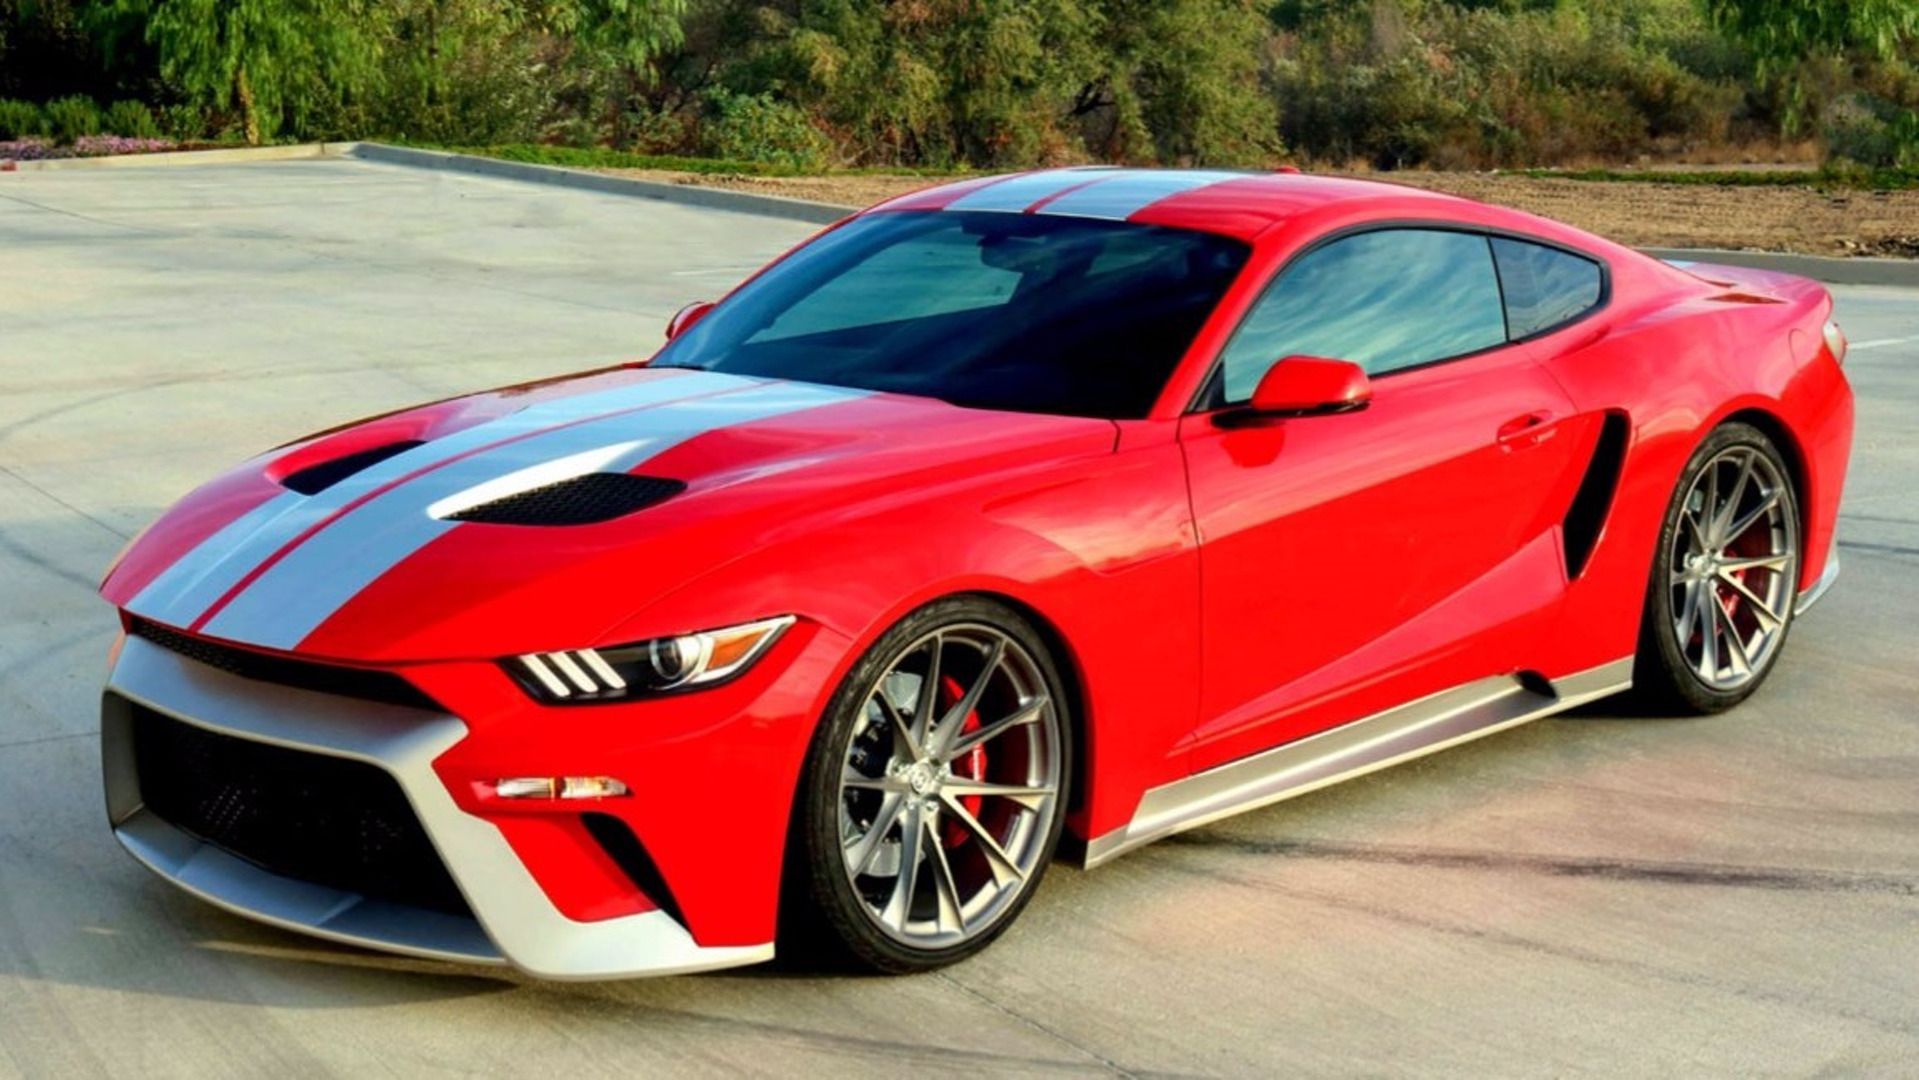 This Custom Mustang By Zero 60 Design Riffs On The Upcoming Ford Gt Supercar S Styling Ford Gt Ford Mustang Gt Ford Mustang